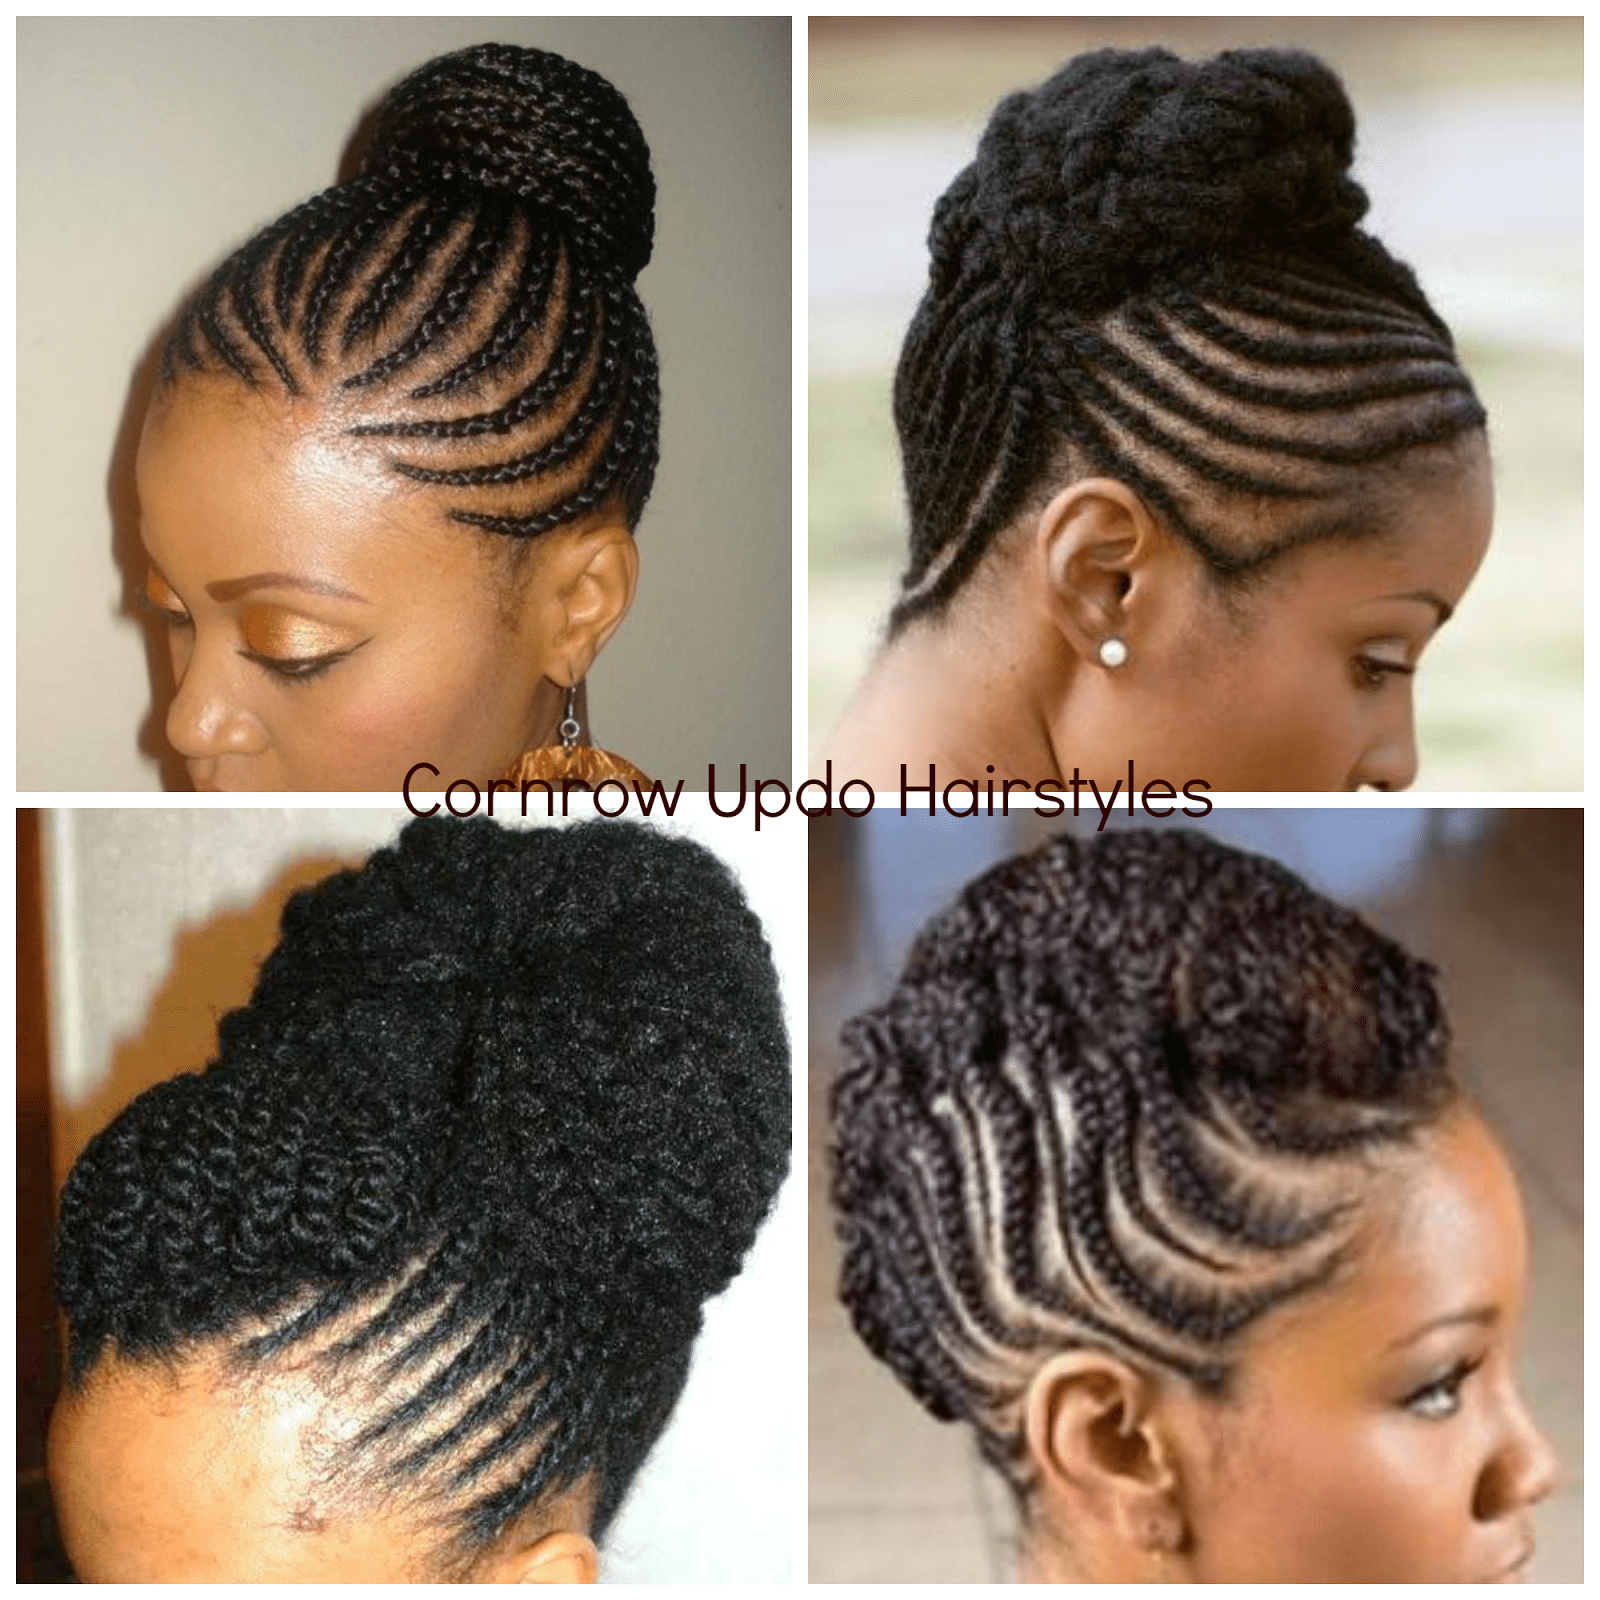 cornrow hairstyles for women, women styles, hairstyles, makeup